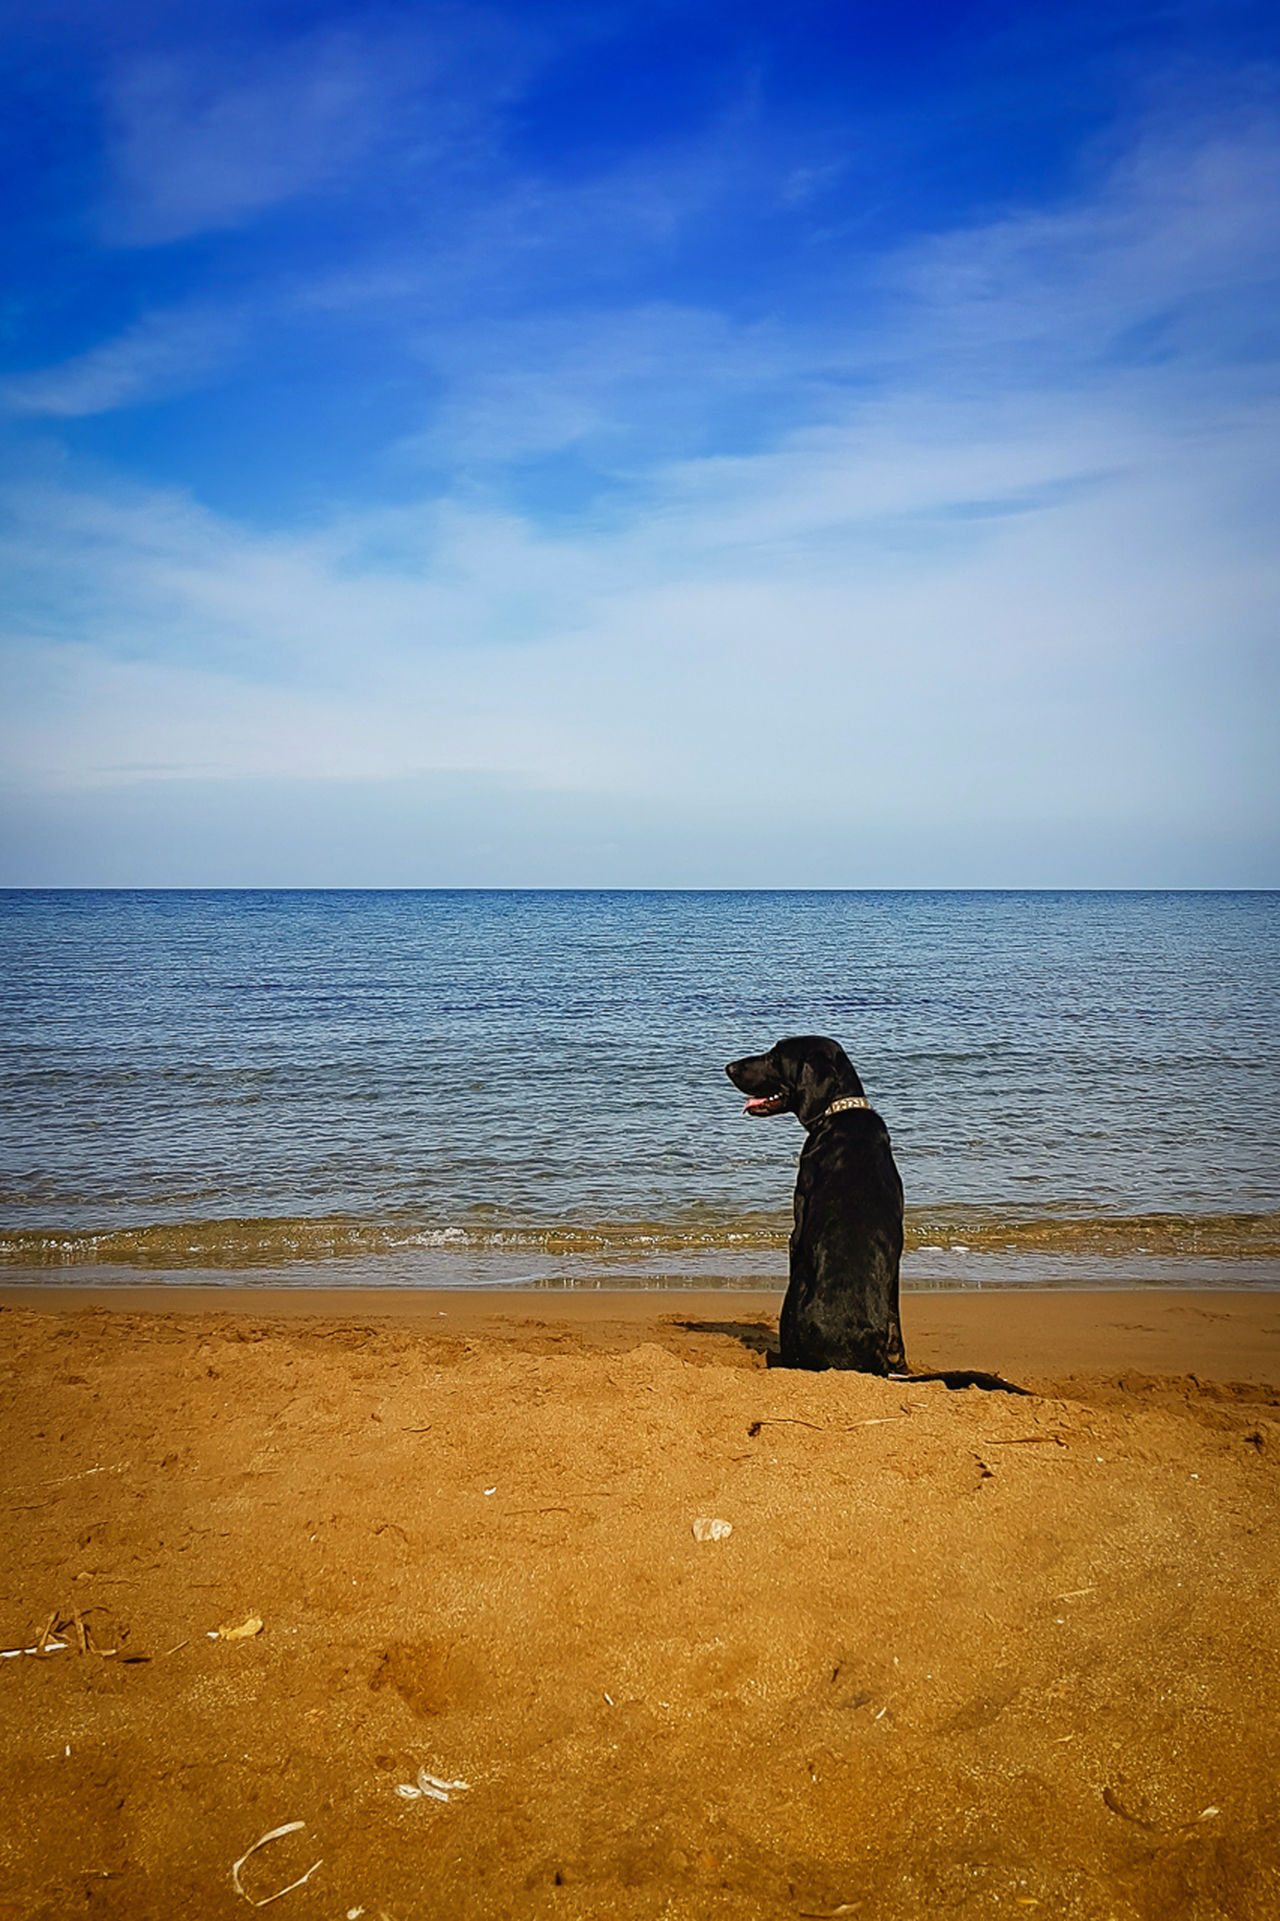 Dog on beach Beach Beauty In Nature Cloud - Sky Dog Horizon Over Water One Animal Outdoors Pet Sand Scenics Sea Sea And Sky Sky Water